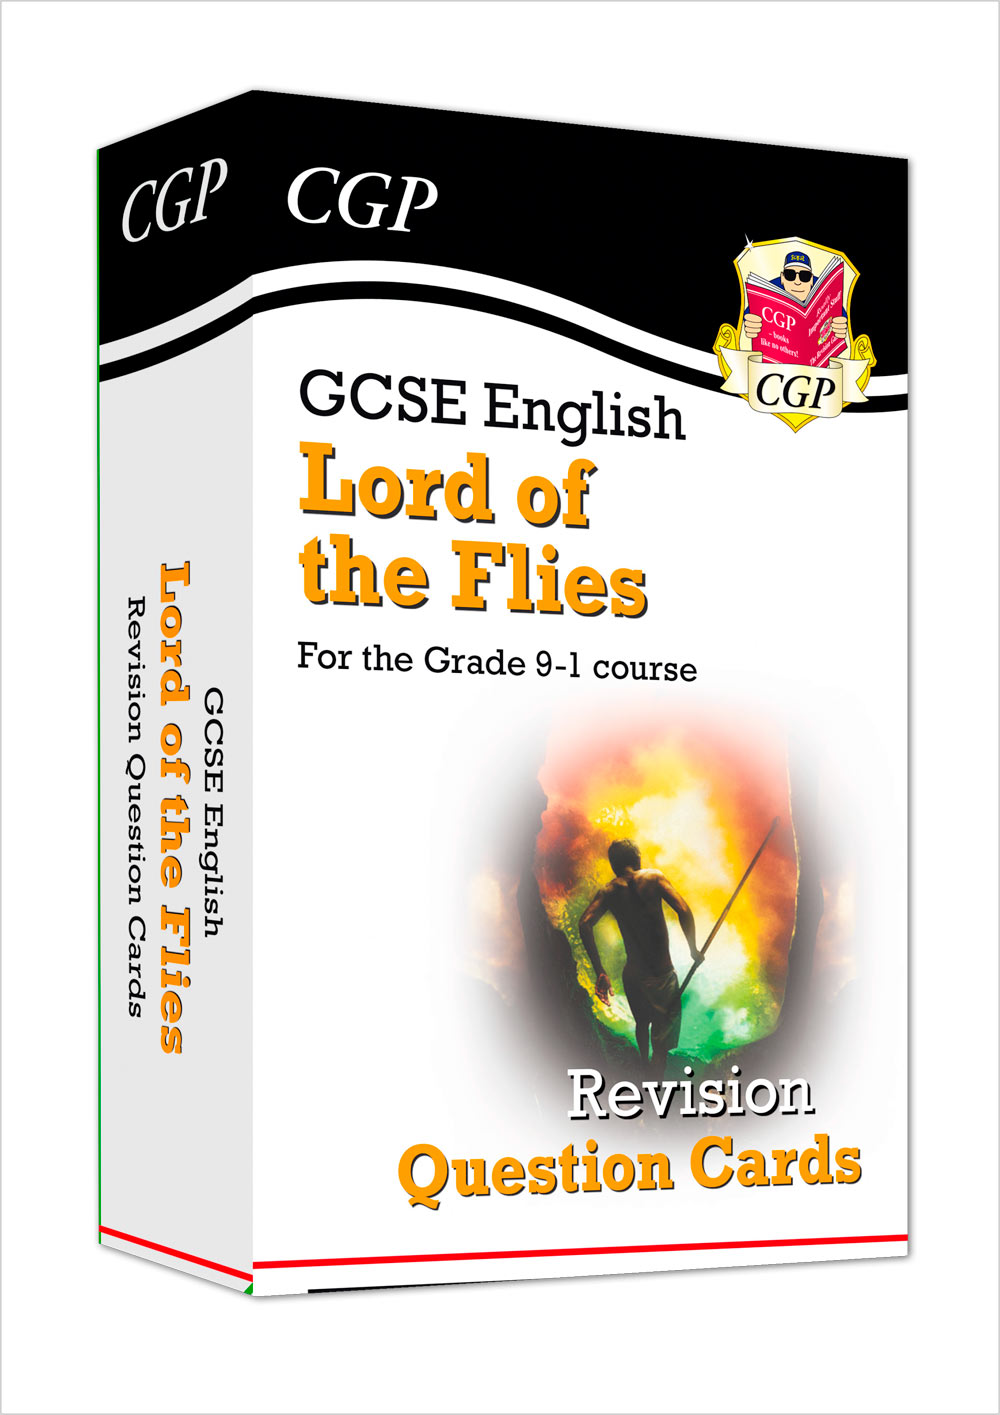 ETFL41 - New Grade 9-1 GCSE English - Lord of the Flies Revision Question Cards